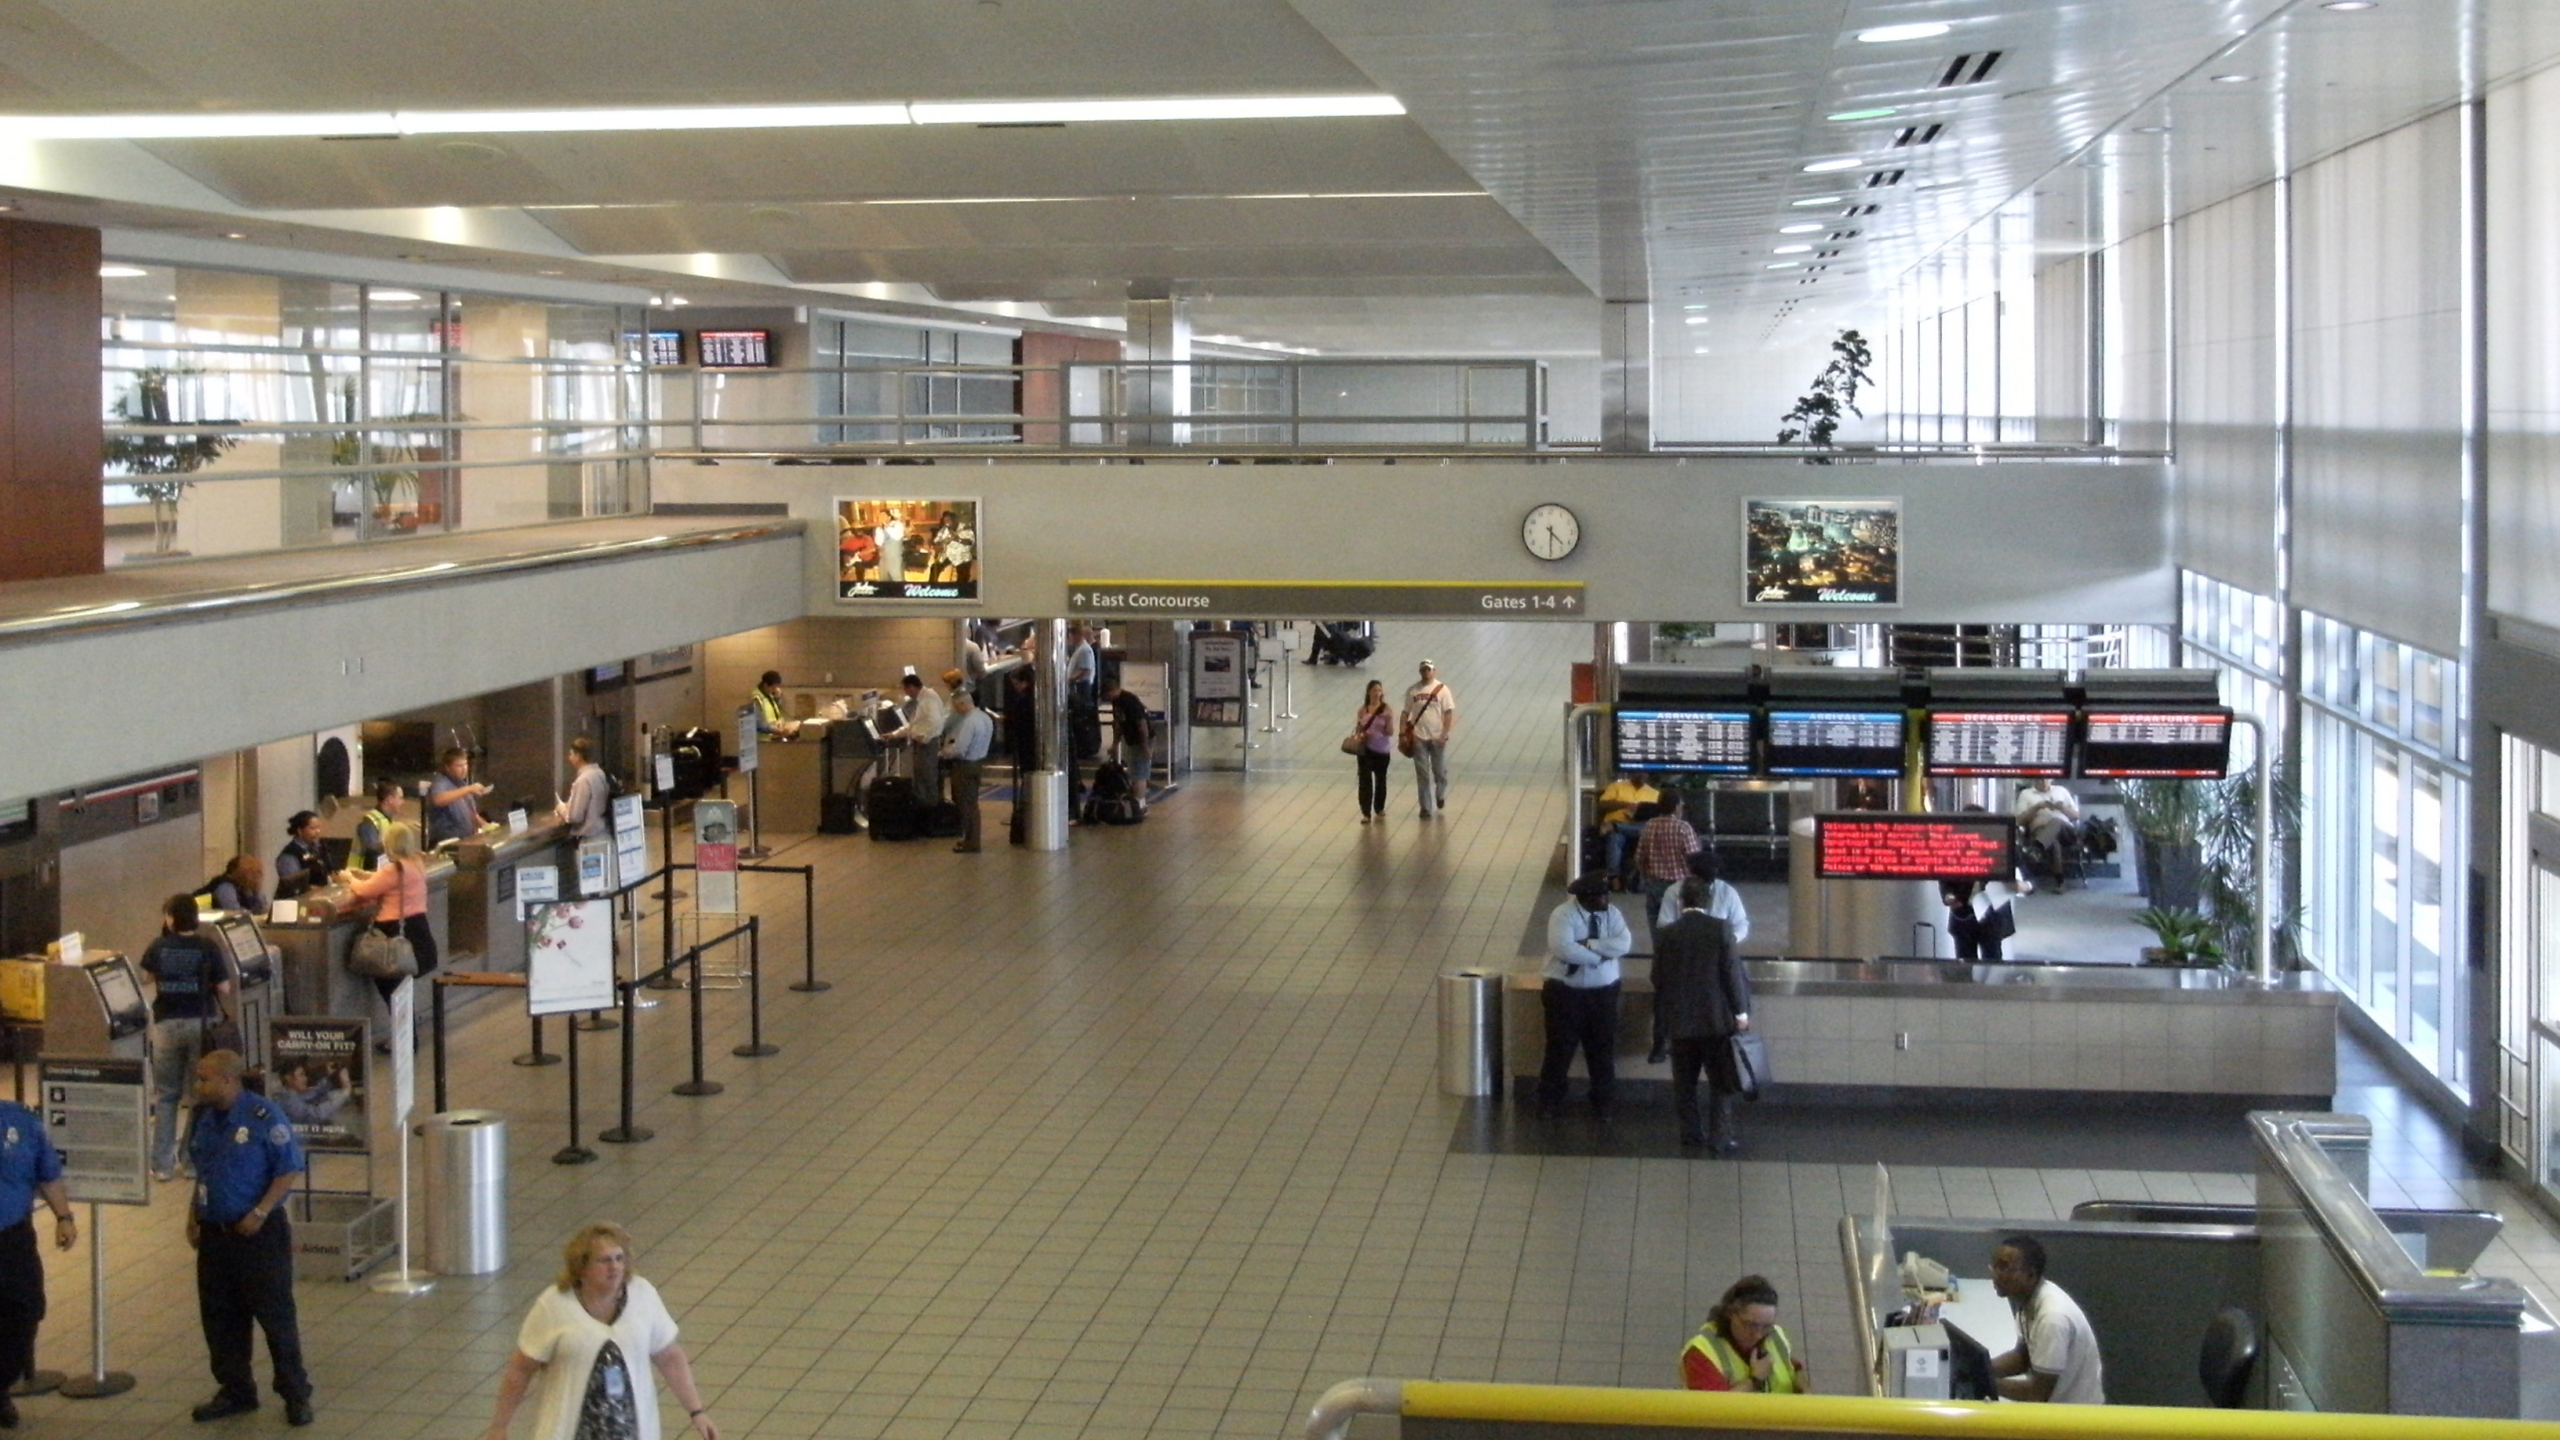 Jackson_Intl_Airport_main_departures_and_ticketing_hall_Sept_2010_403579